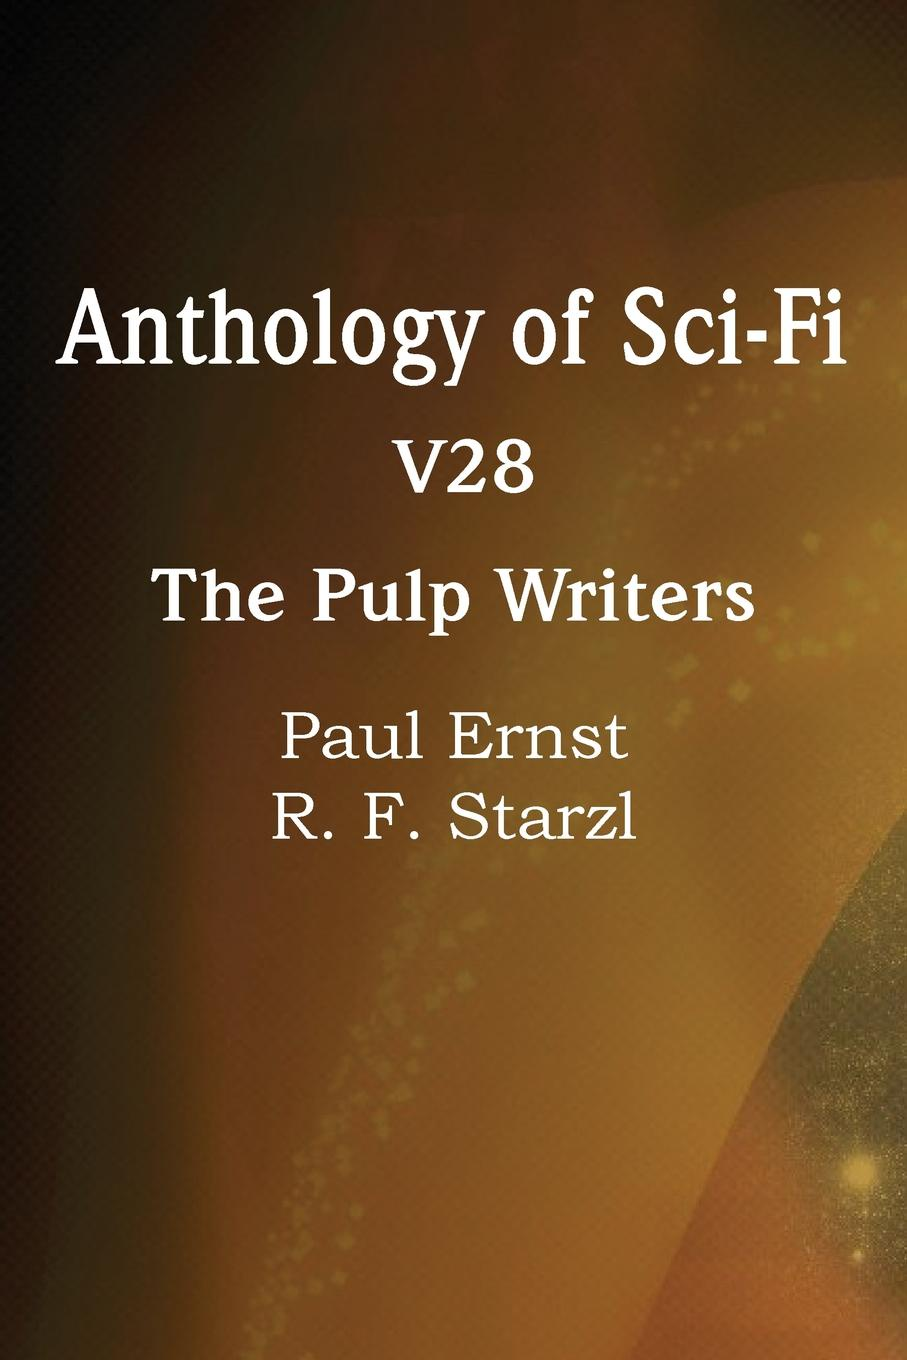 Paul Ernst, R. F. Starzl Anthology of Sci-Fi V28, the Pulp Writers paul r halmos lectures on boolean algebras